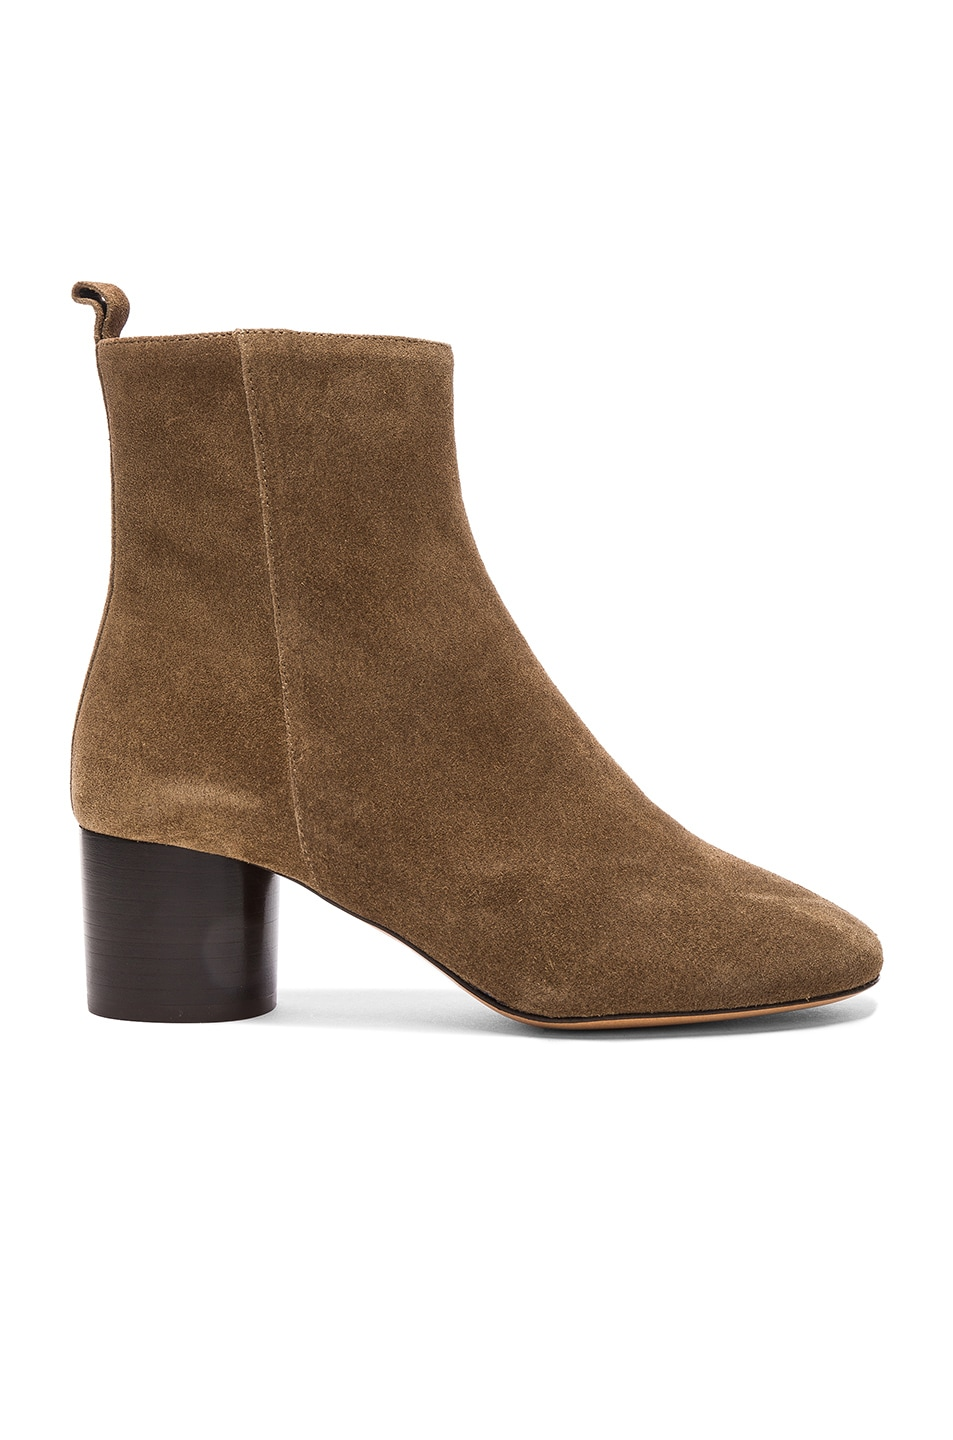 Image 1 of Isabel Marant Etoile Suede Deyissa Summer Velvet Boots in Brown